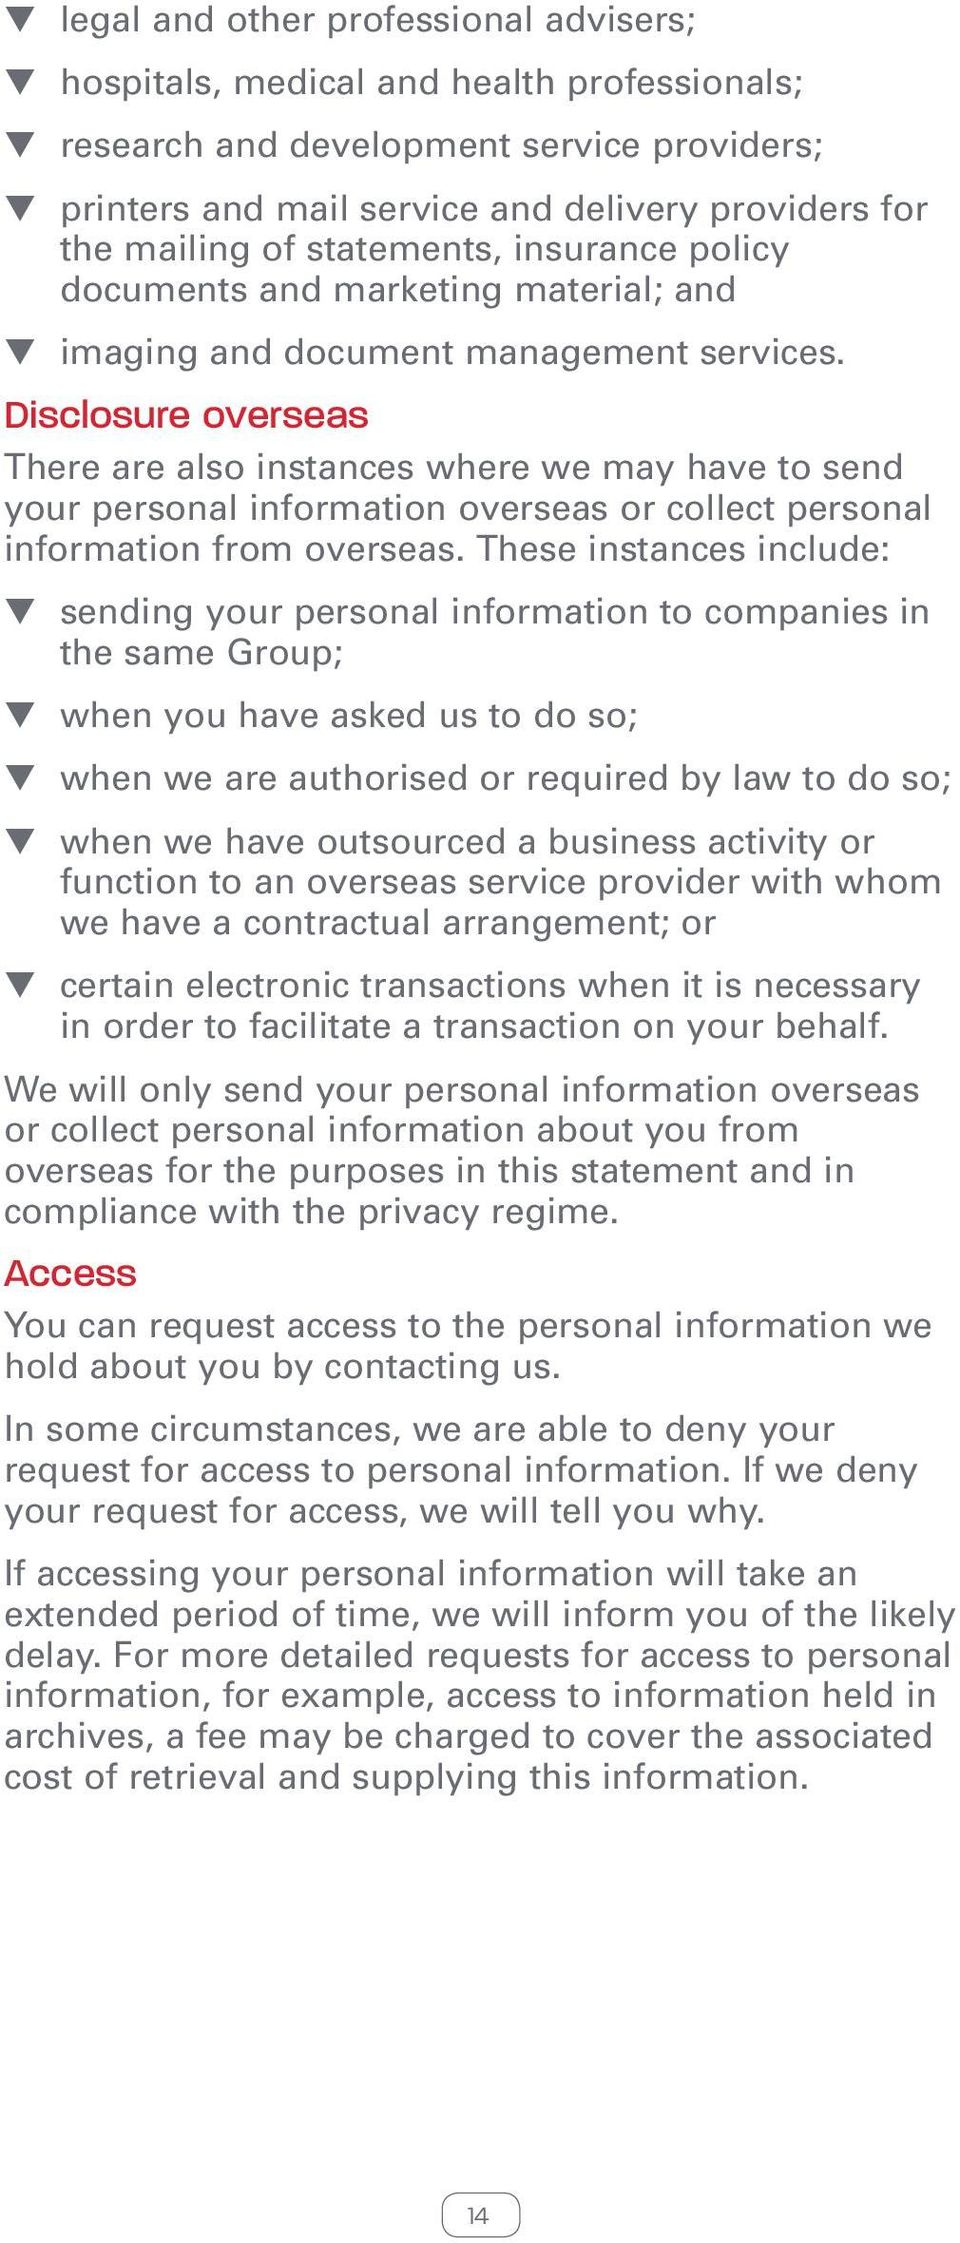 Disclosure overseas There are also instances where we may have to send your personal information overseas or collect personal information from overseas.